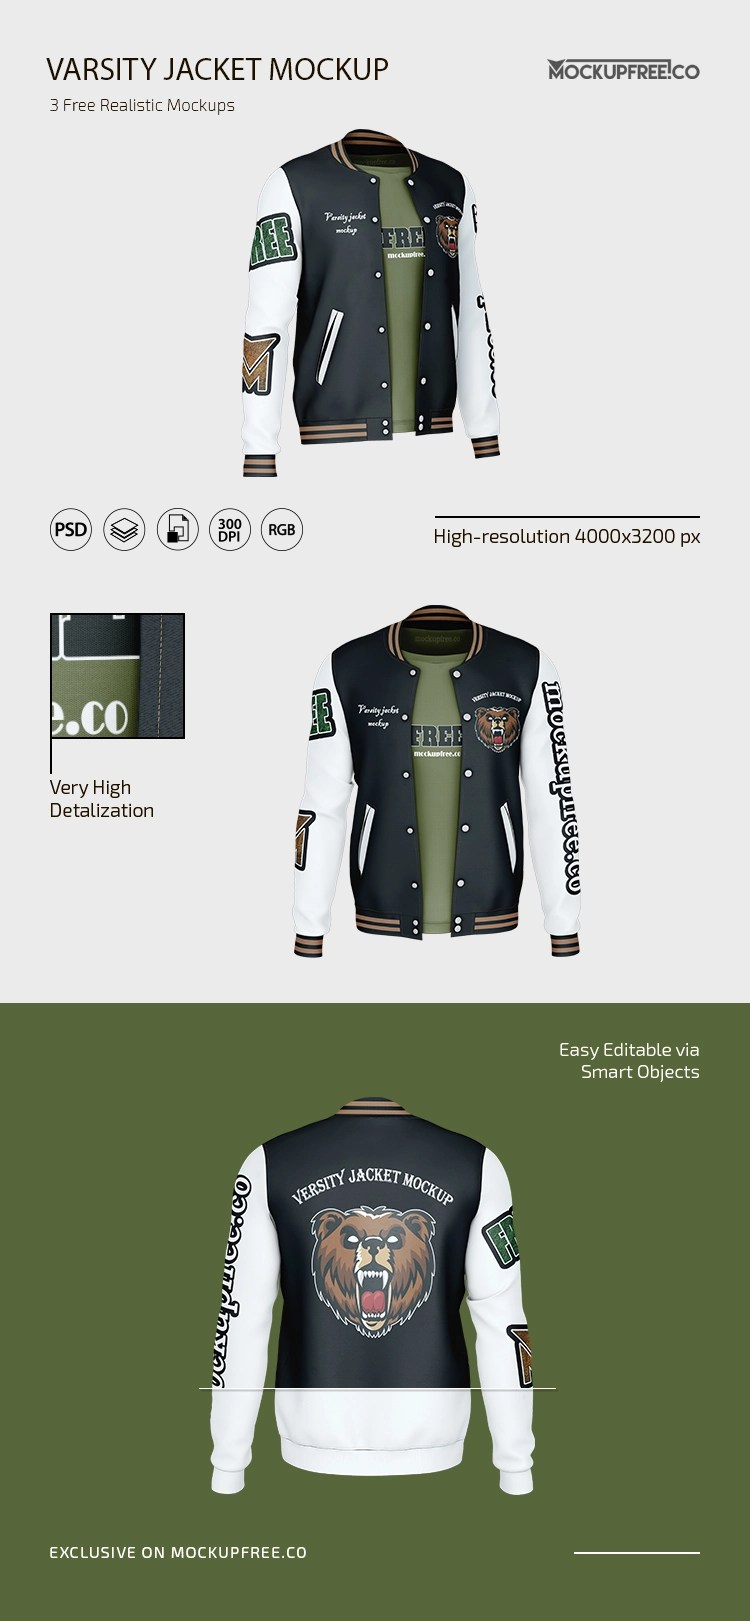 Magazine, book, stationery, apparel, device, mobile, editorial, packaging, business cards, ipad, macbook,. Free Varsity Jacket Mockup Mockupfree Co